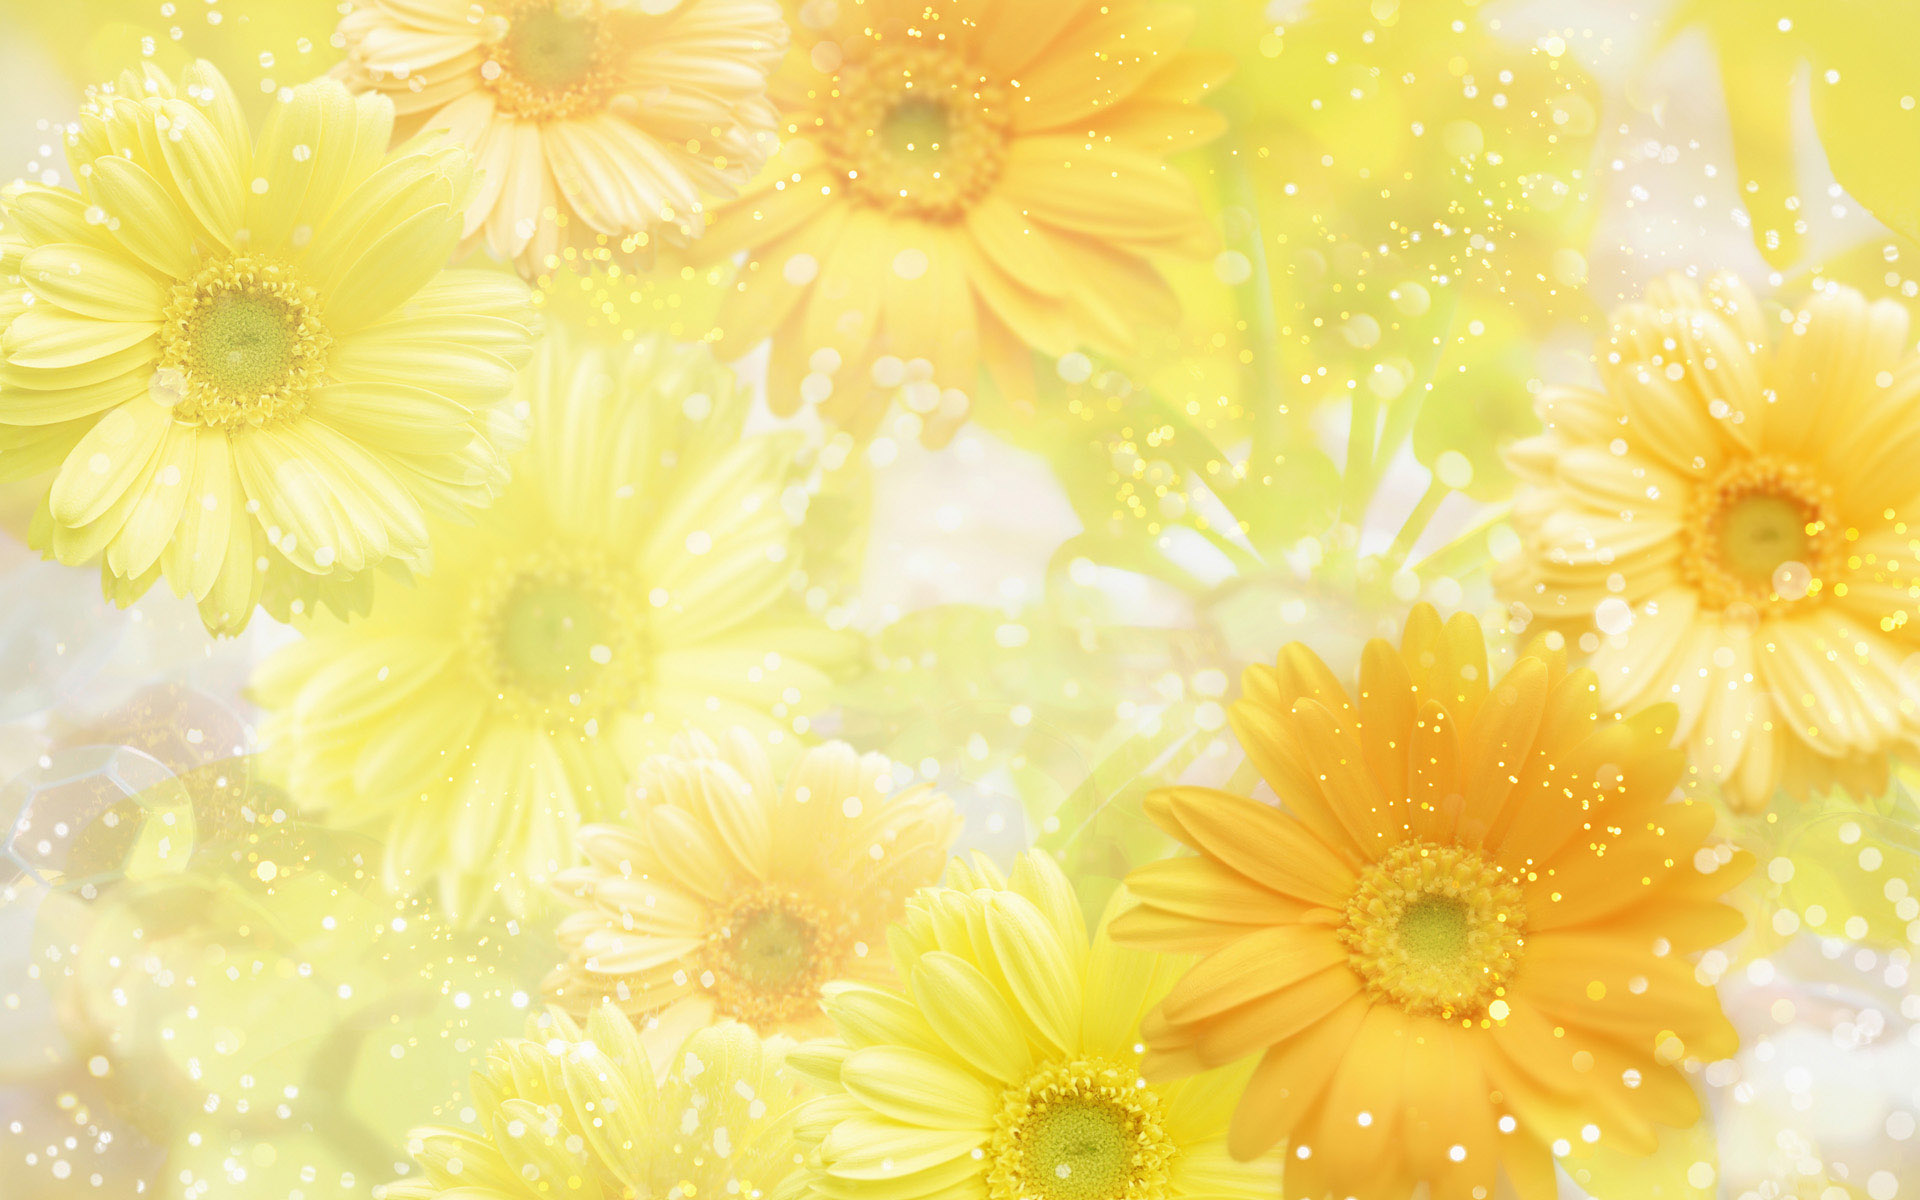 Yellow Flower Background Wallpaper 1920x1200 32589